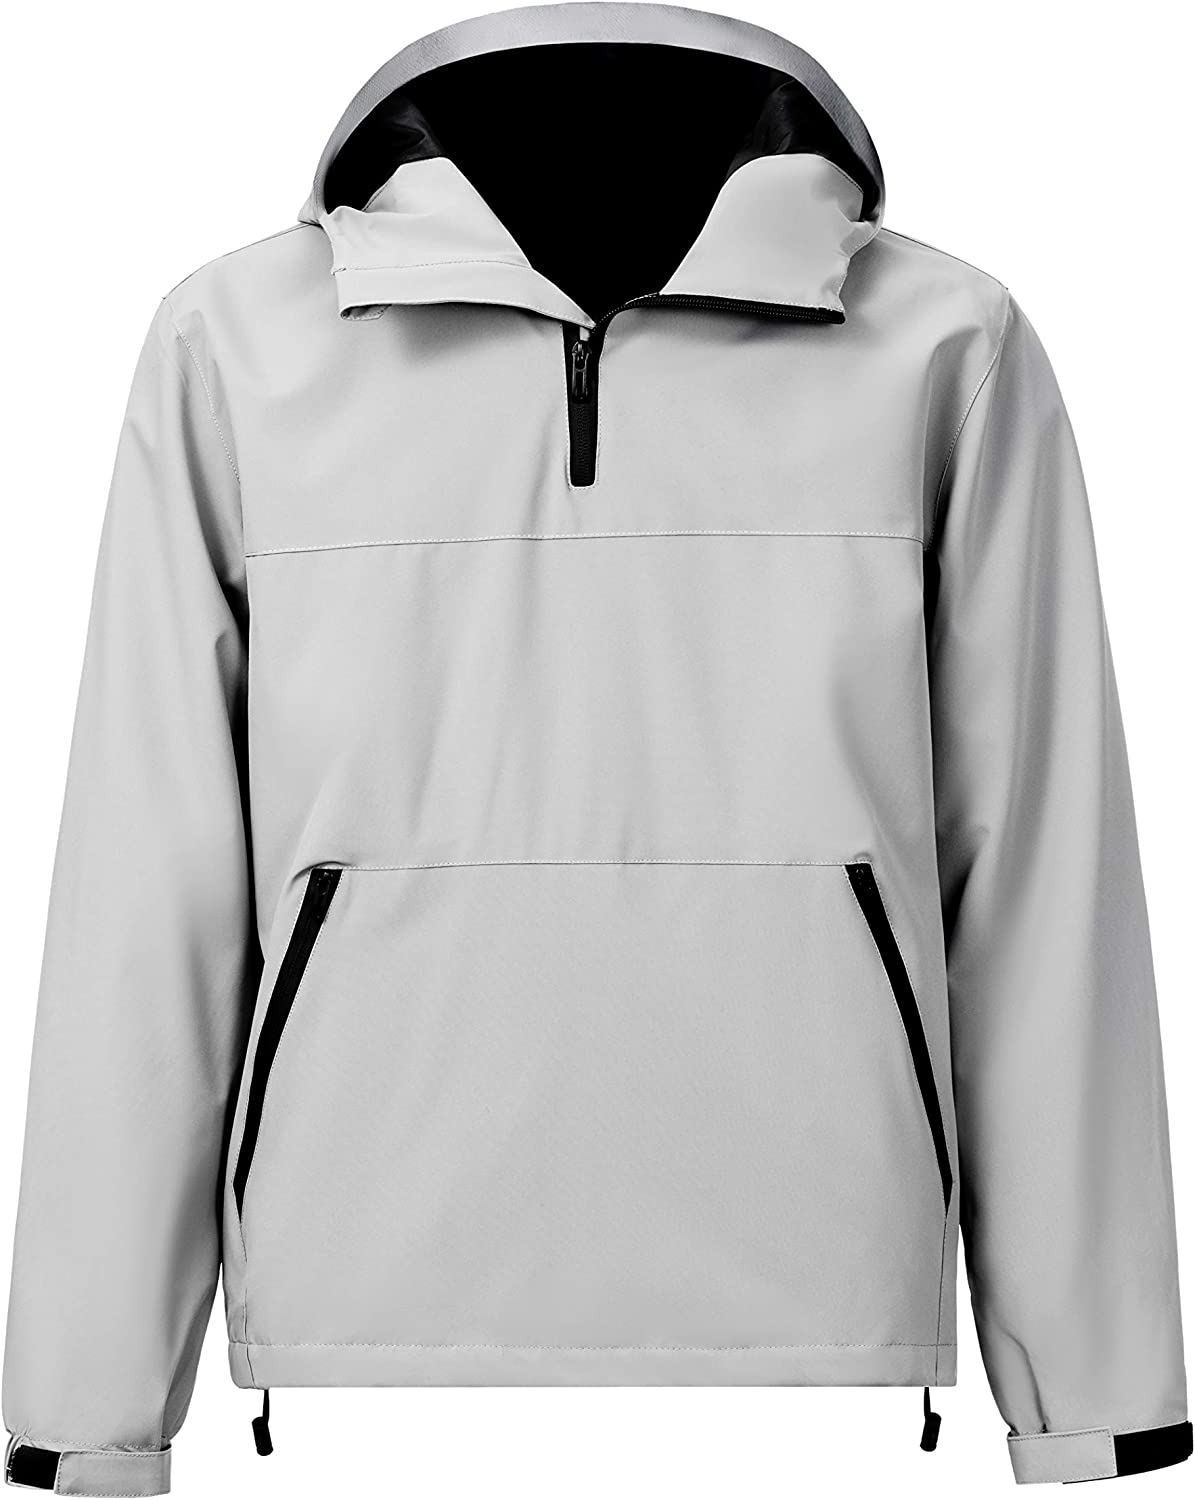 VICALLED 1 4 Zipper Men's Jac Lightweight Hooded Easy-to-use Waterproof Rain Max 90% OFF